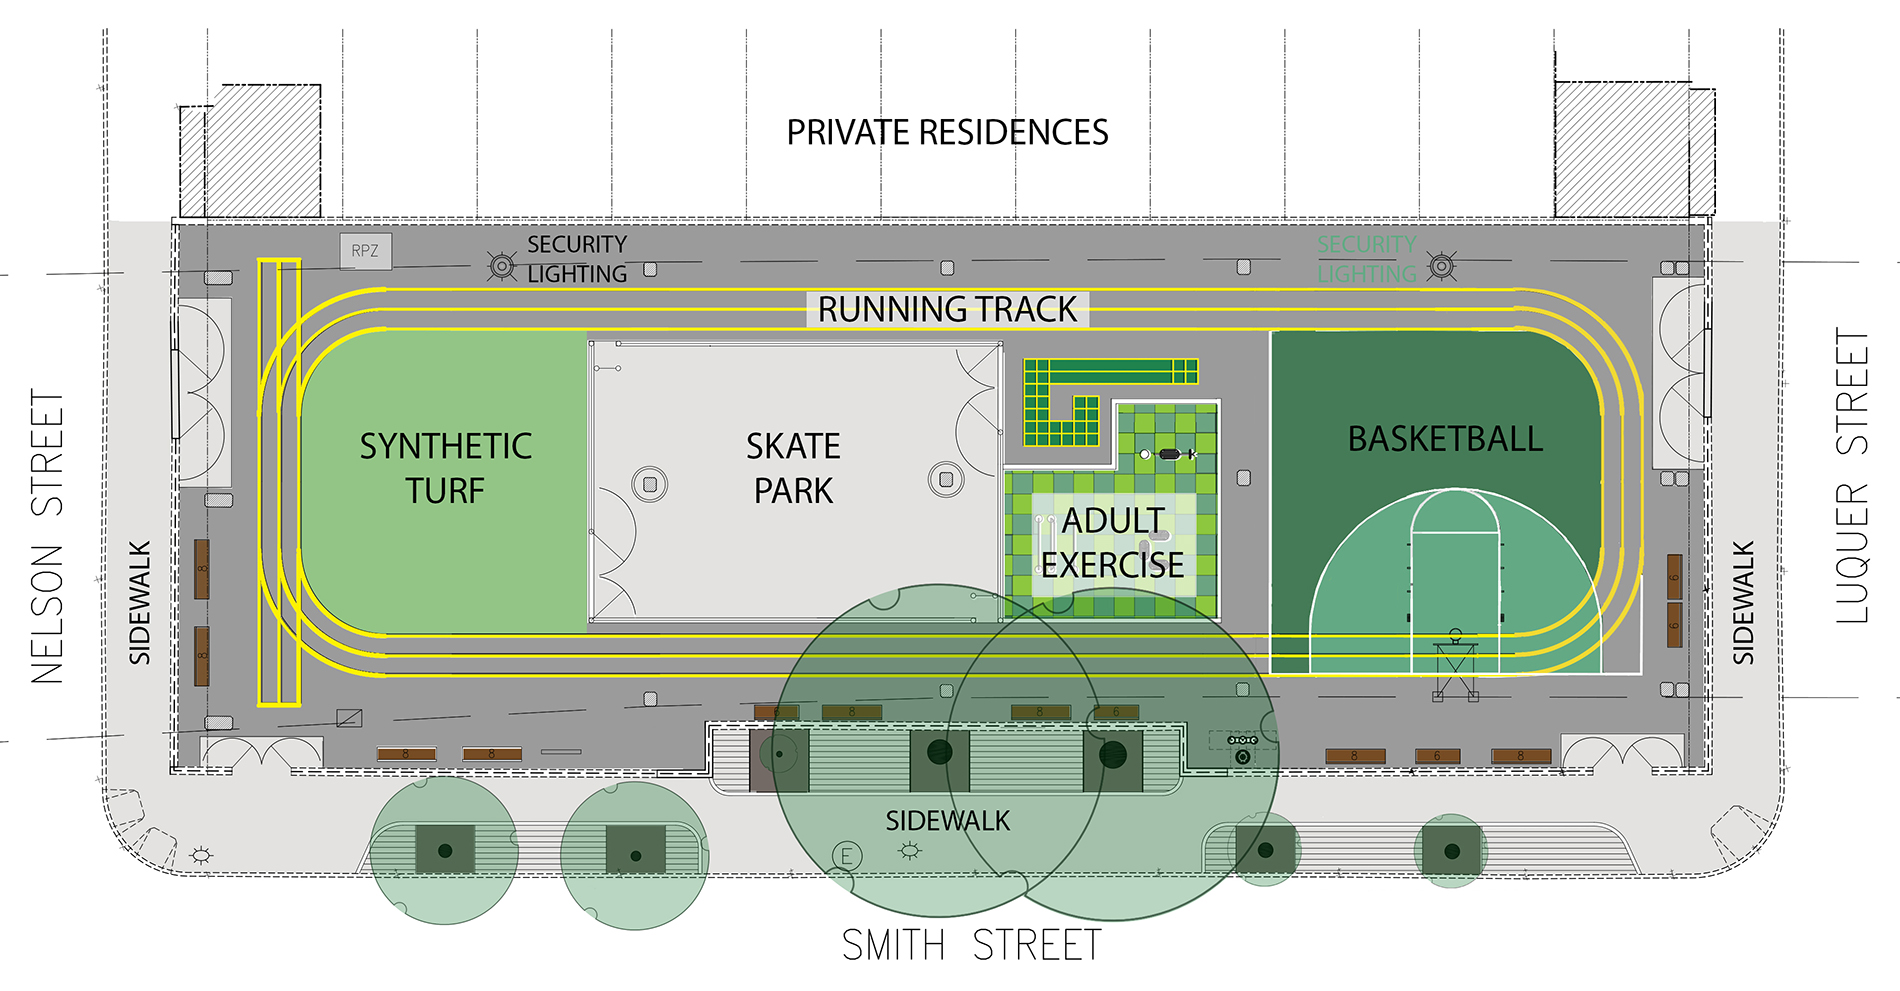 Design of St. Mary's Playground Multi-Purpose Area Reconstruction